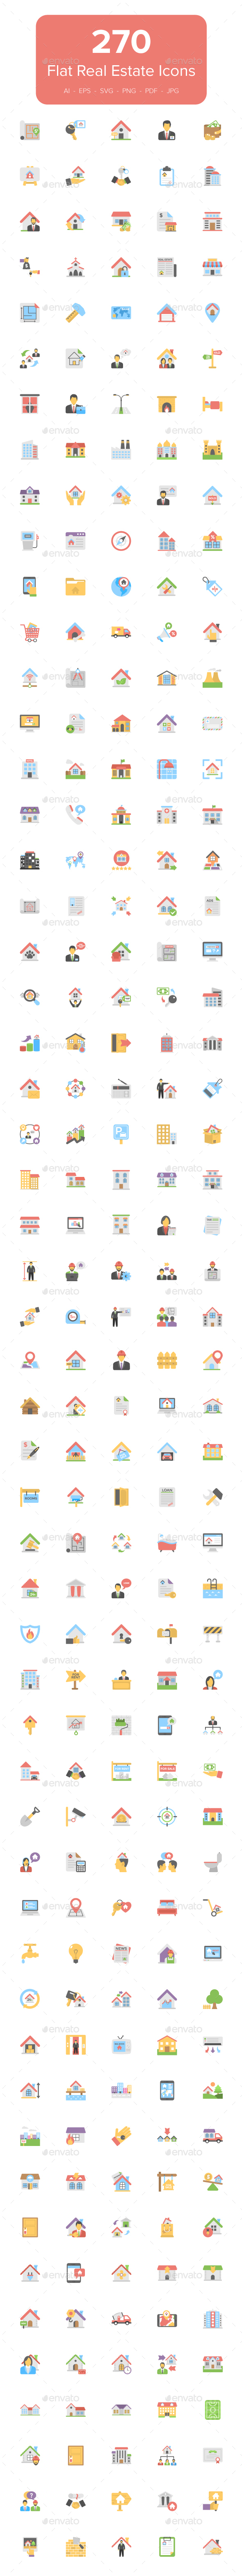 270 Flat Real Estate Icons - Icons